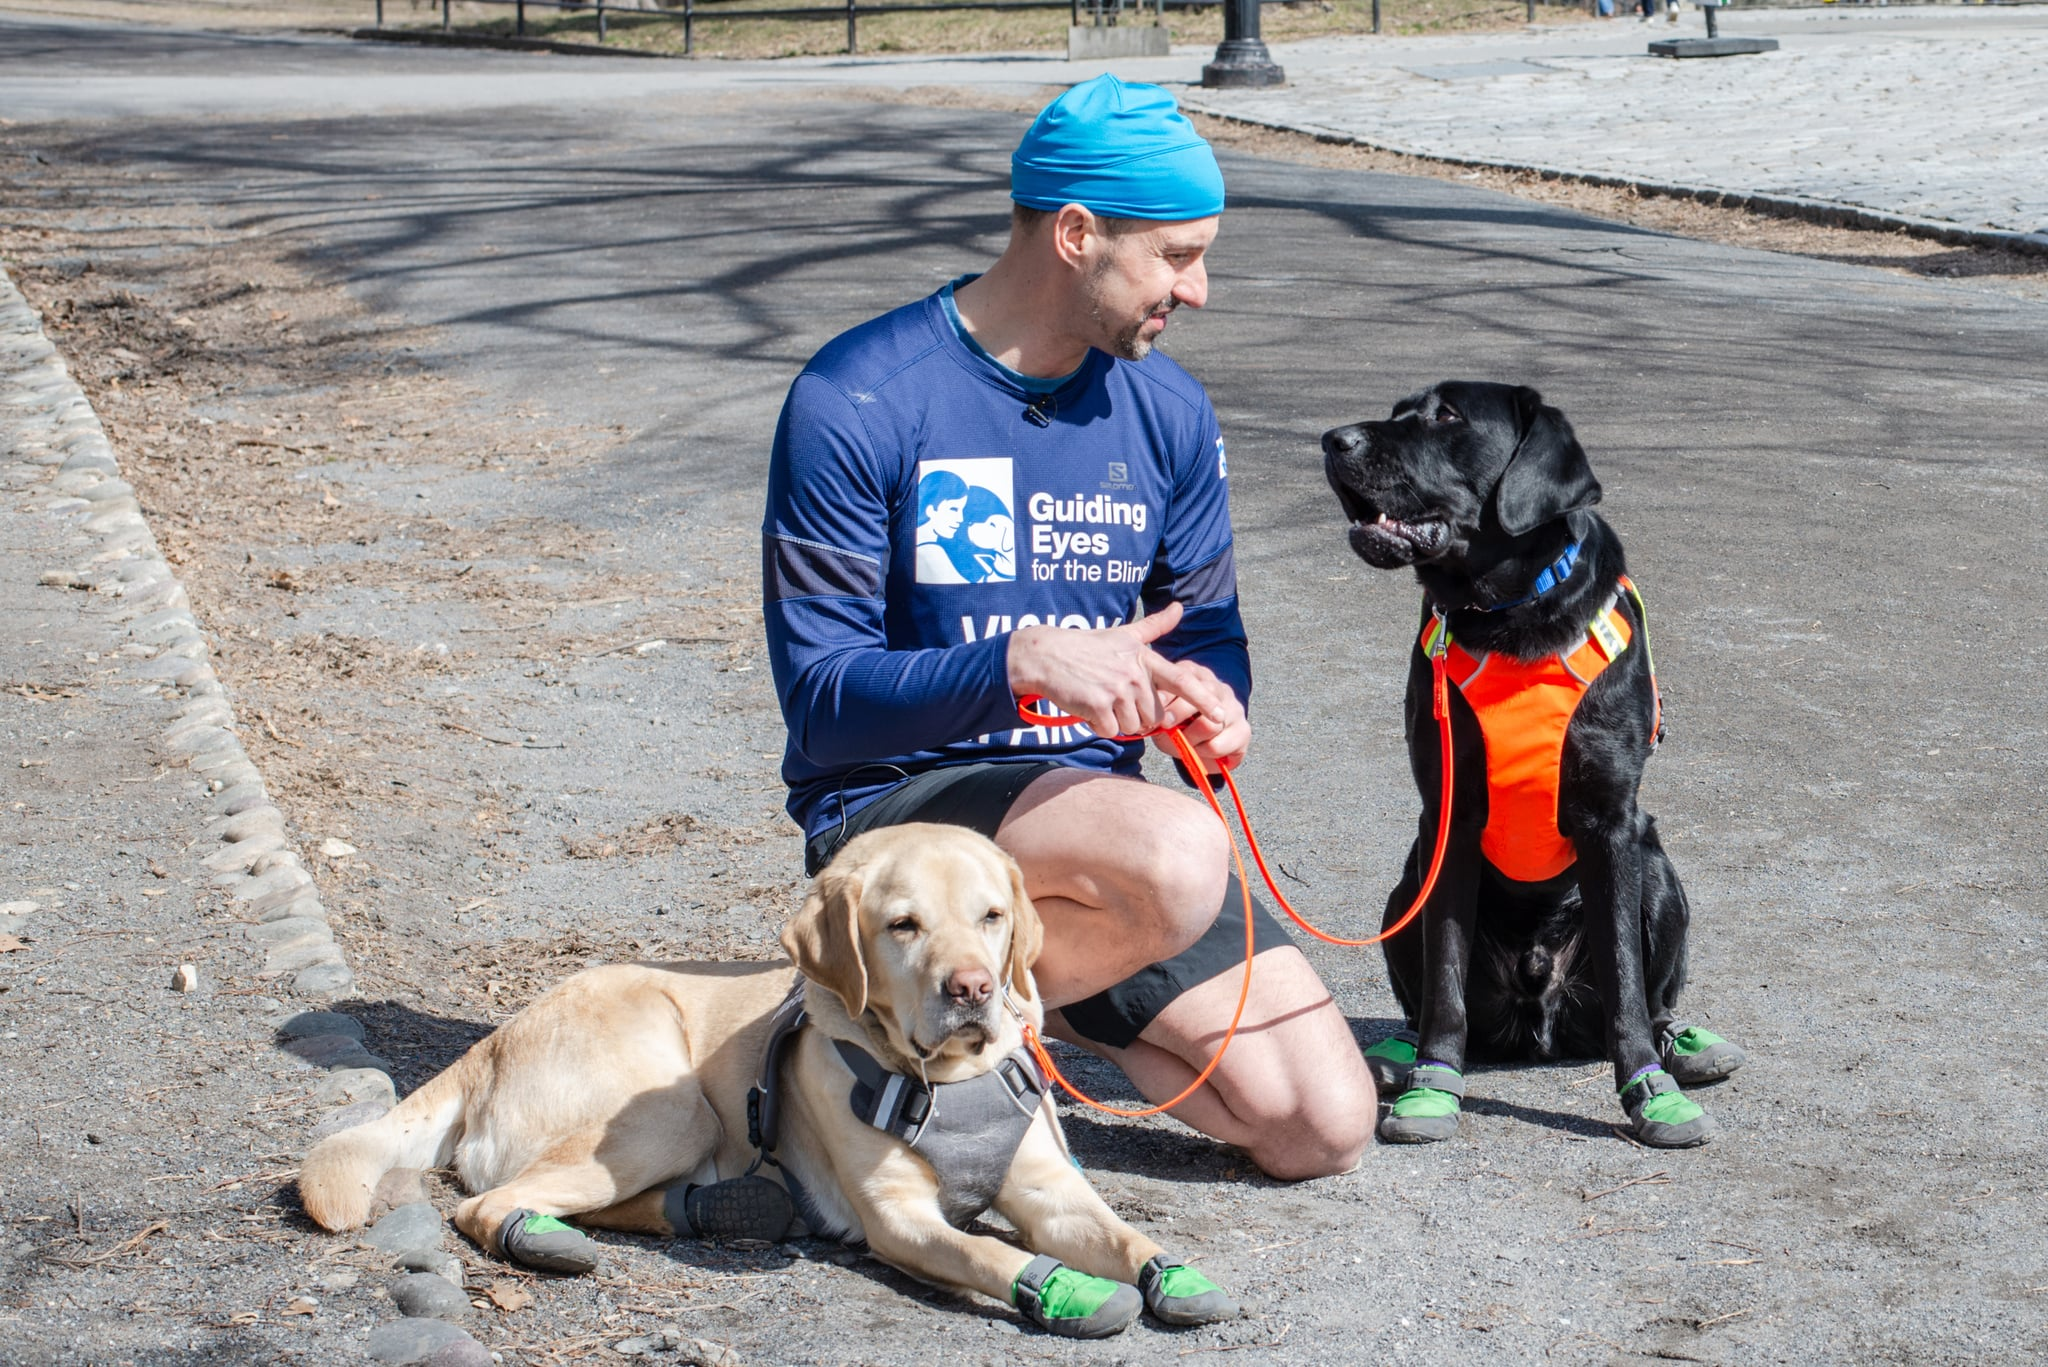 Thomas Panek and Guide Dogs